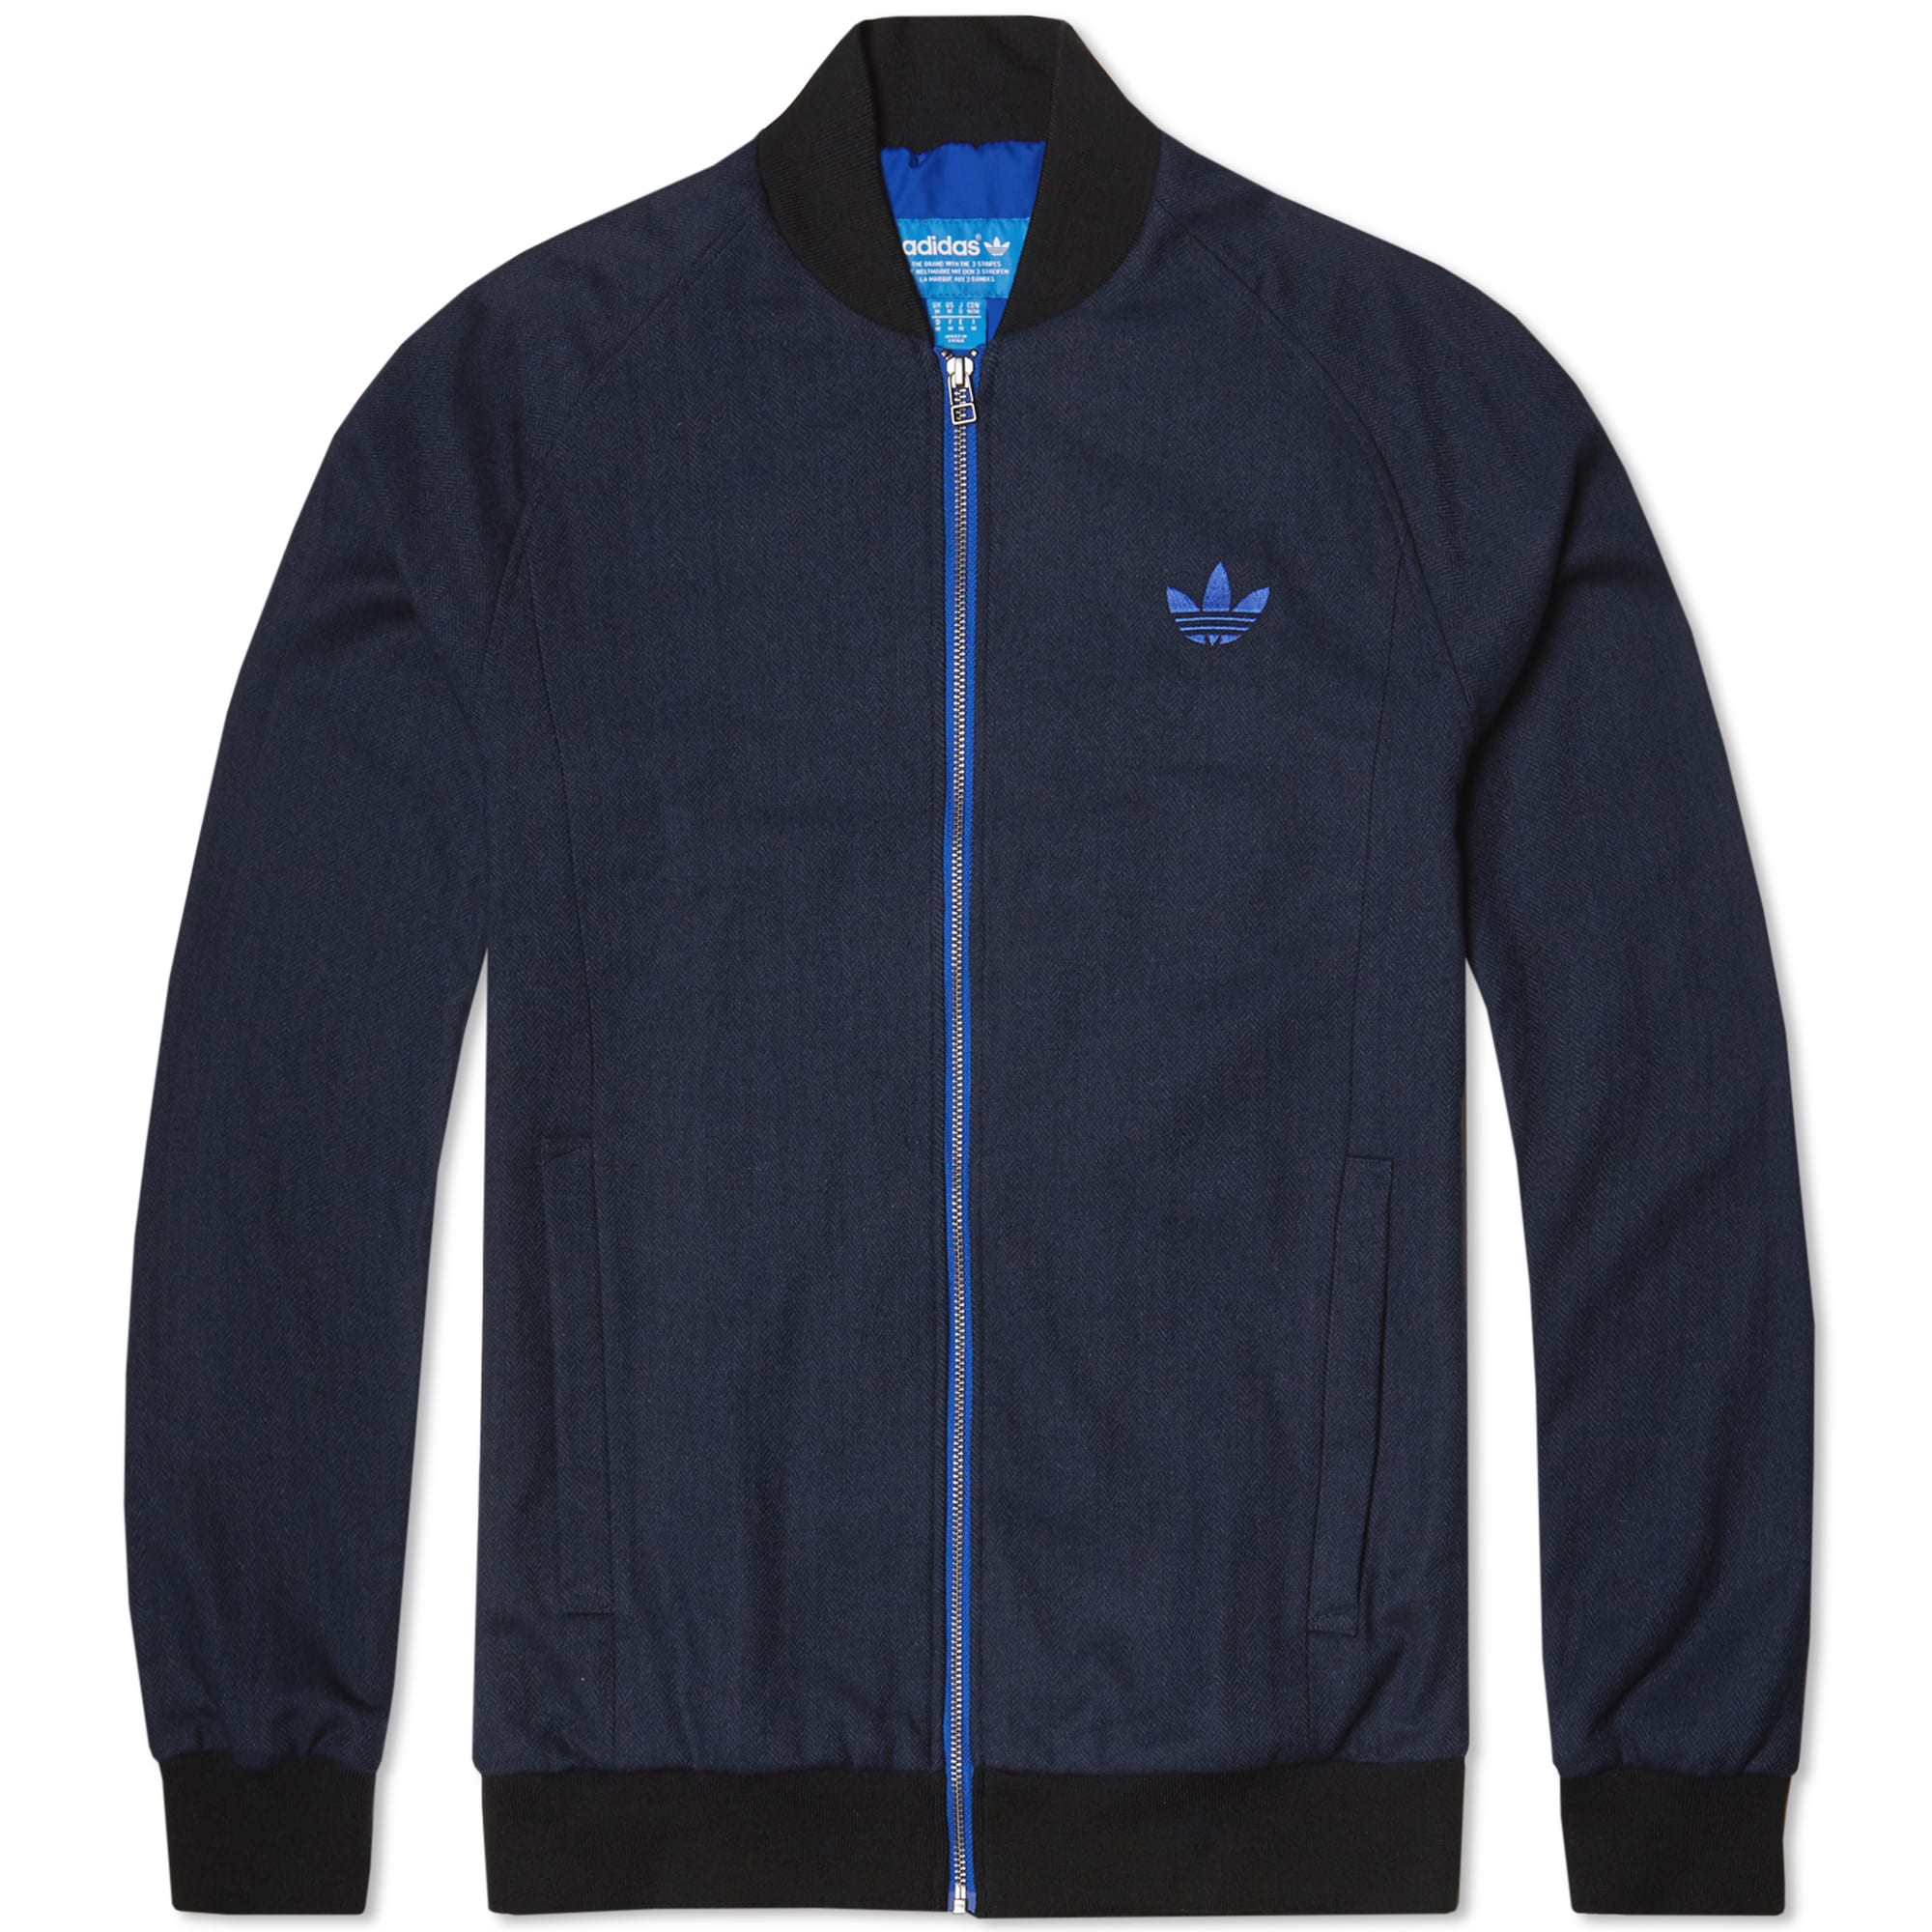 adidas tweed superstar jacket collegiate navy. Black Bedroom Furniture Sets. Home Design Ideas